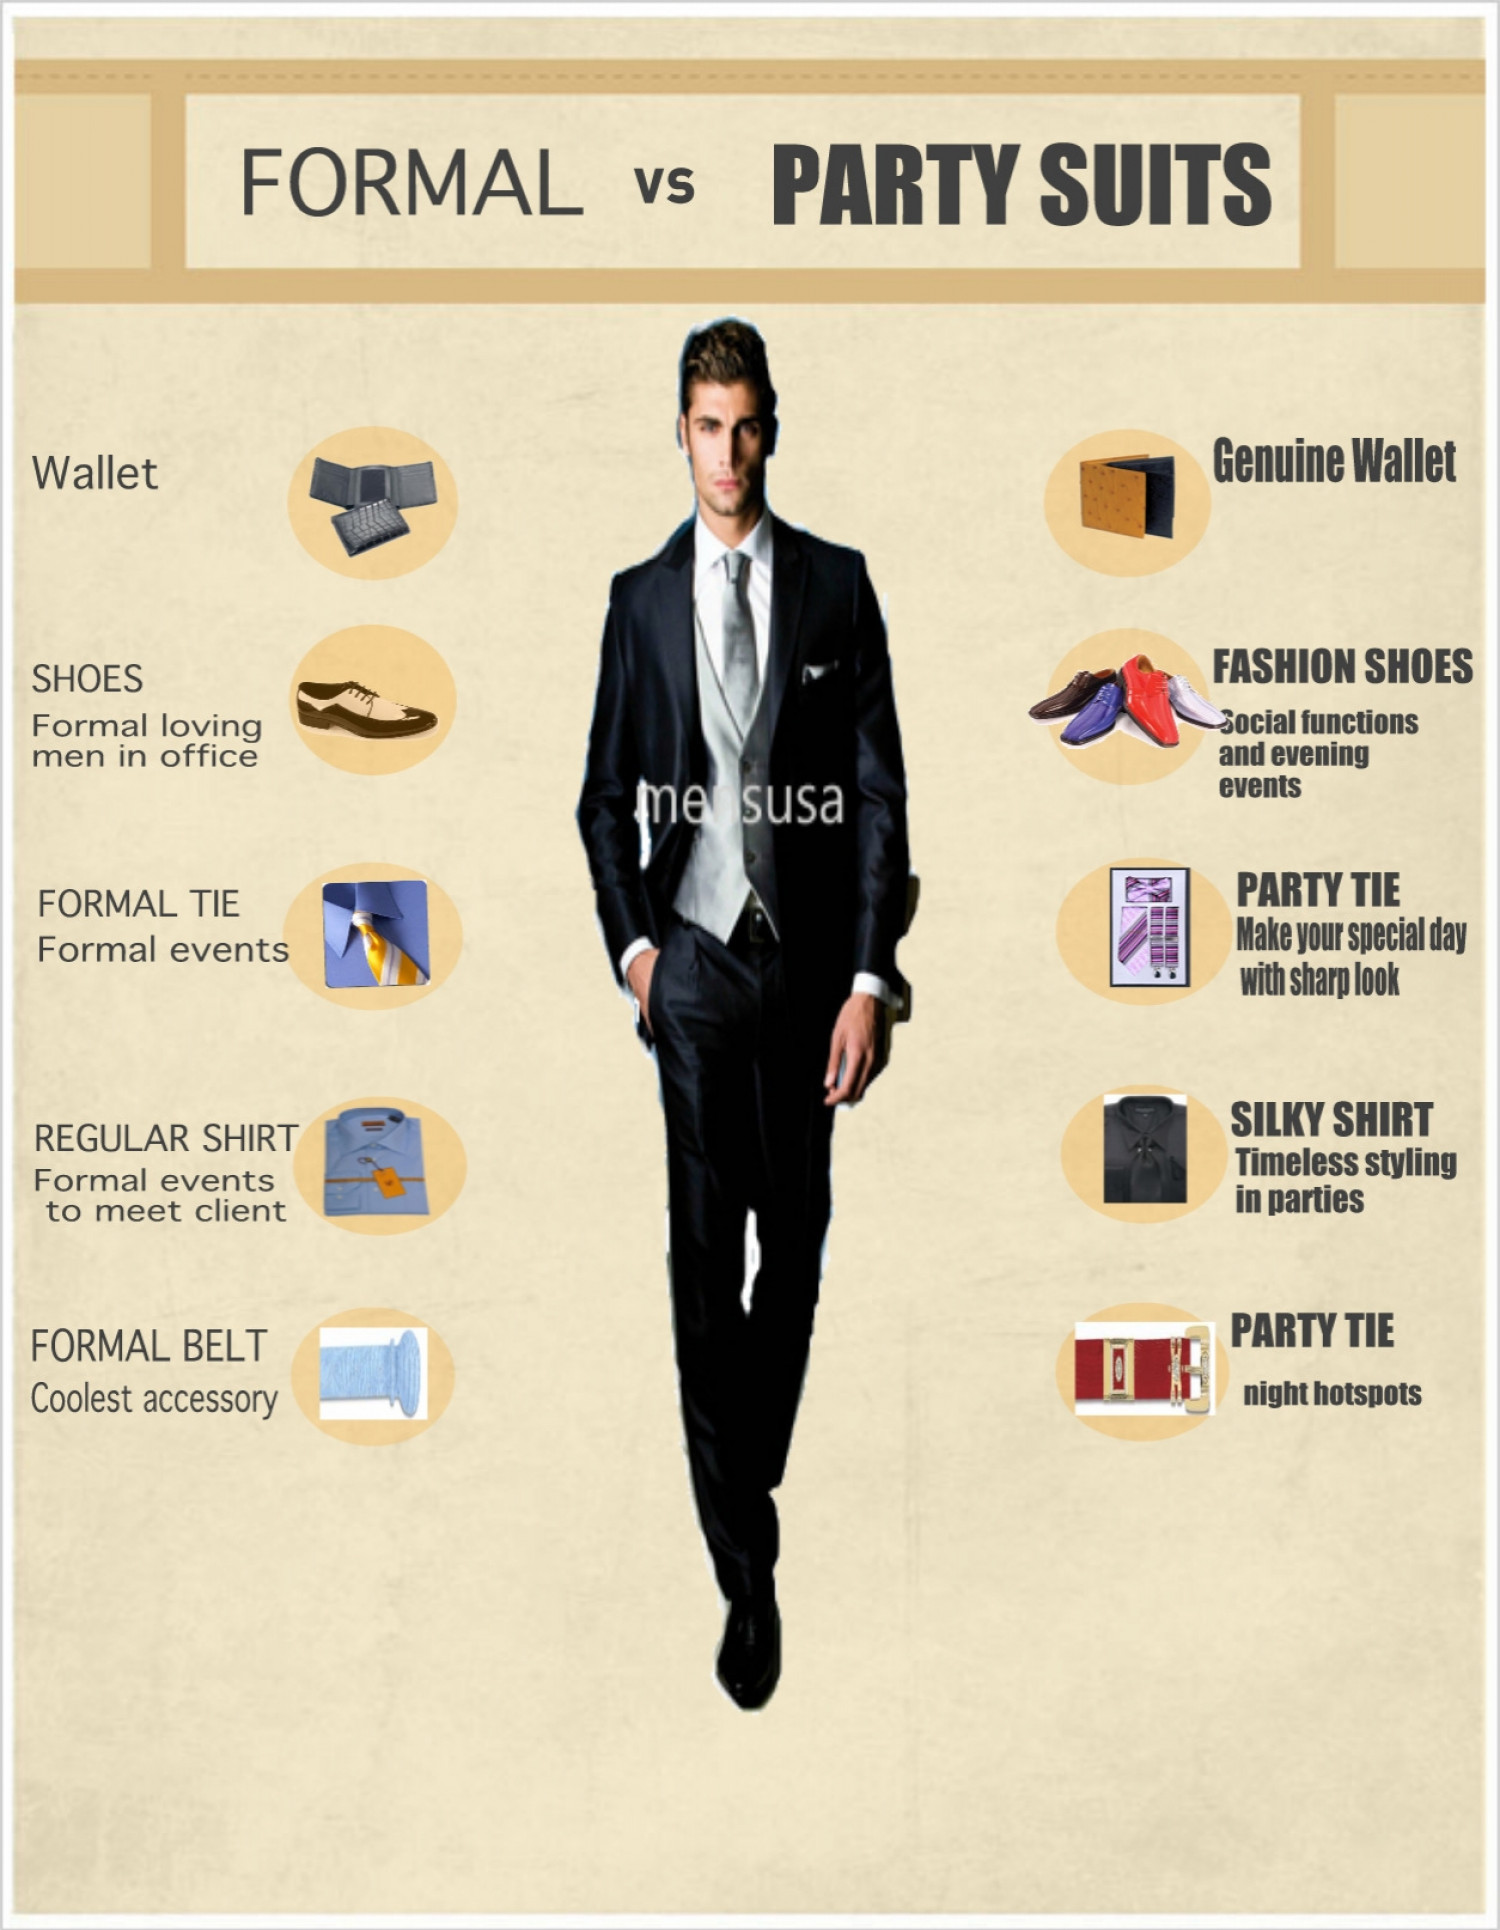 Formal vs party suits from mensusa Infographic